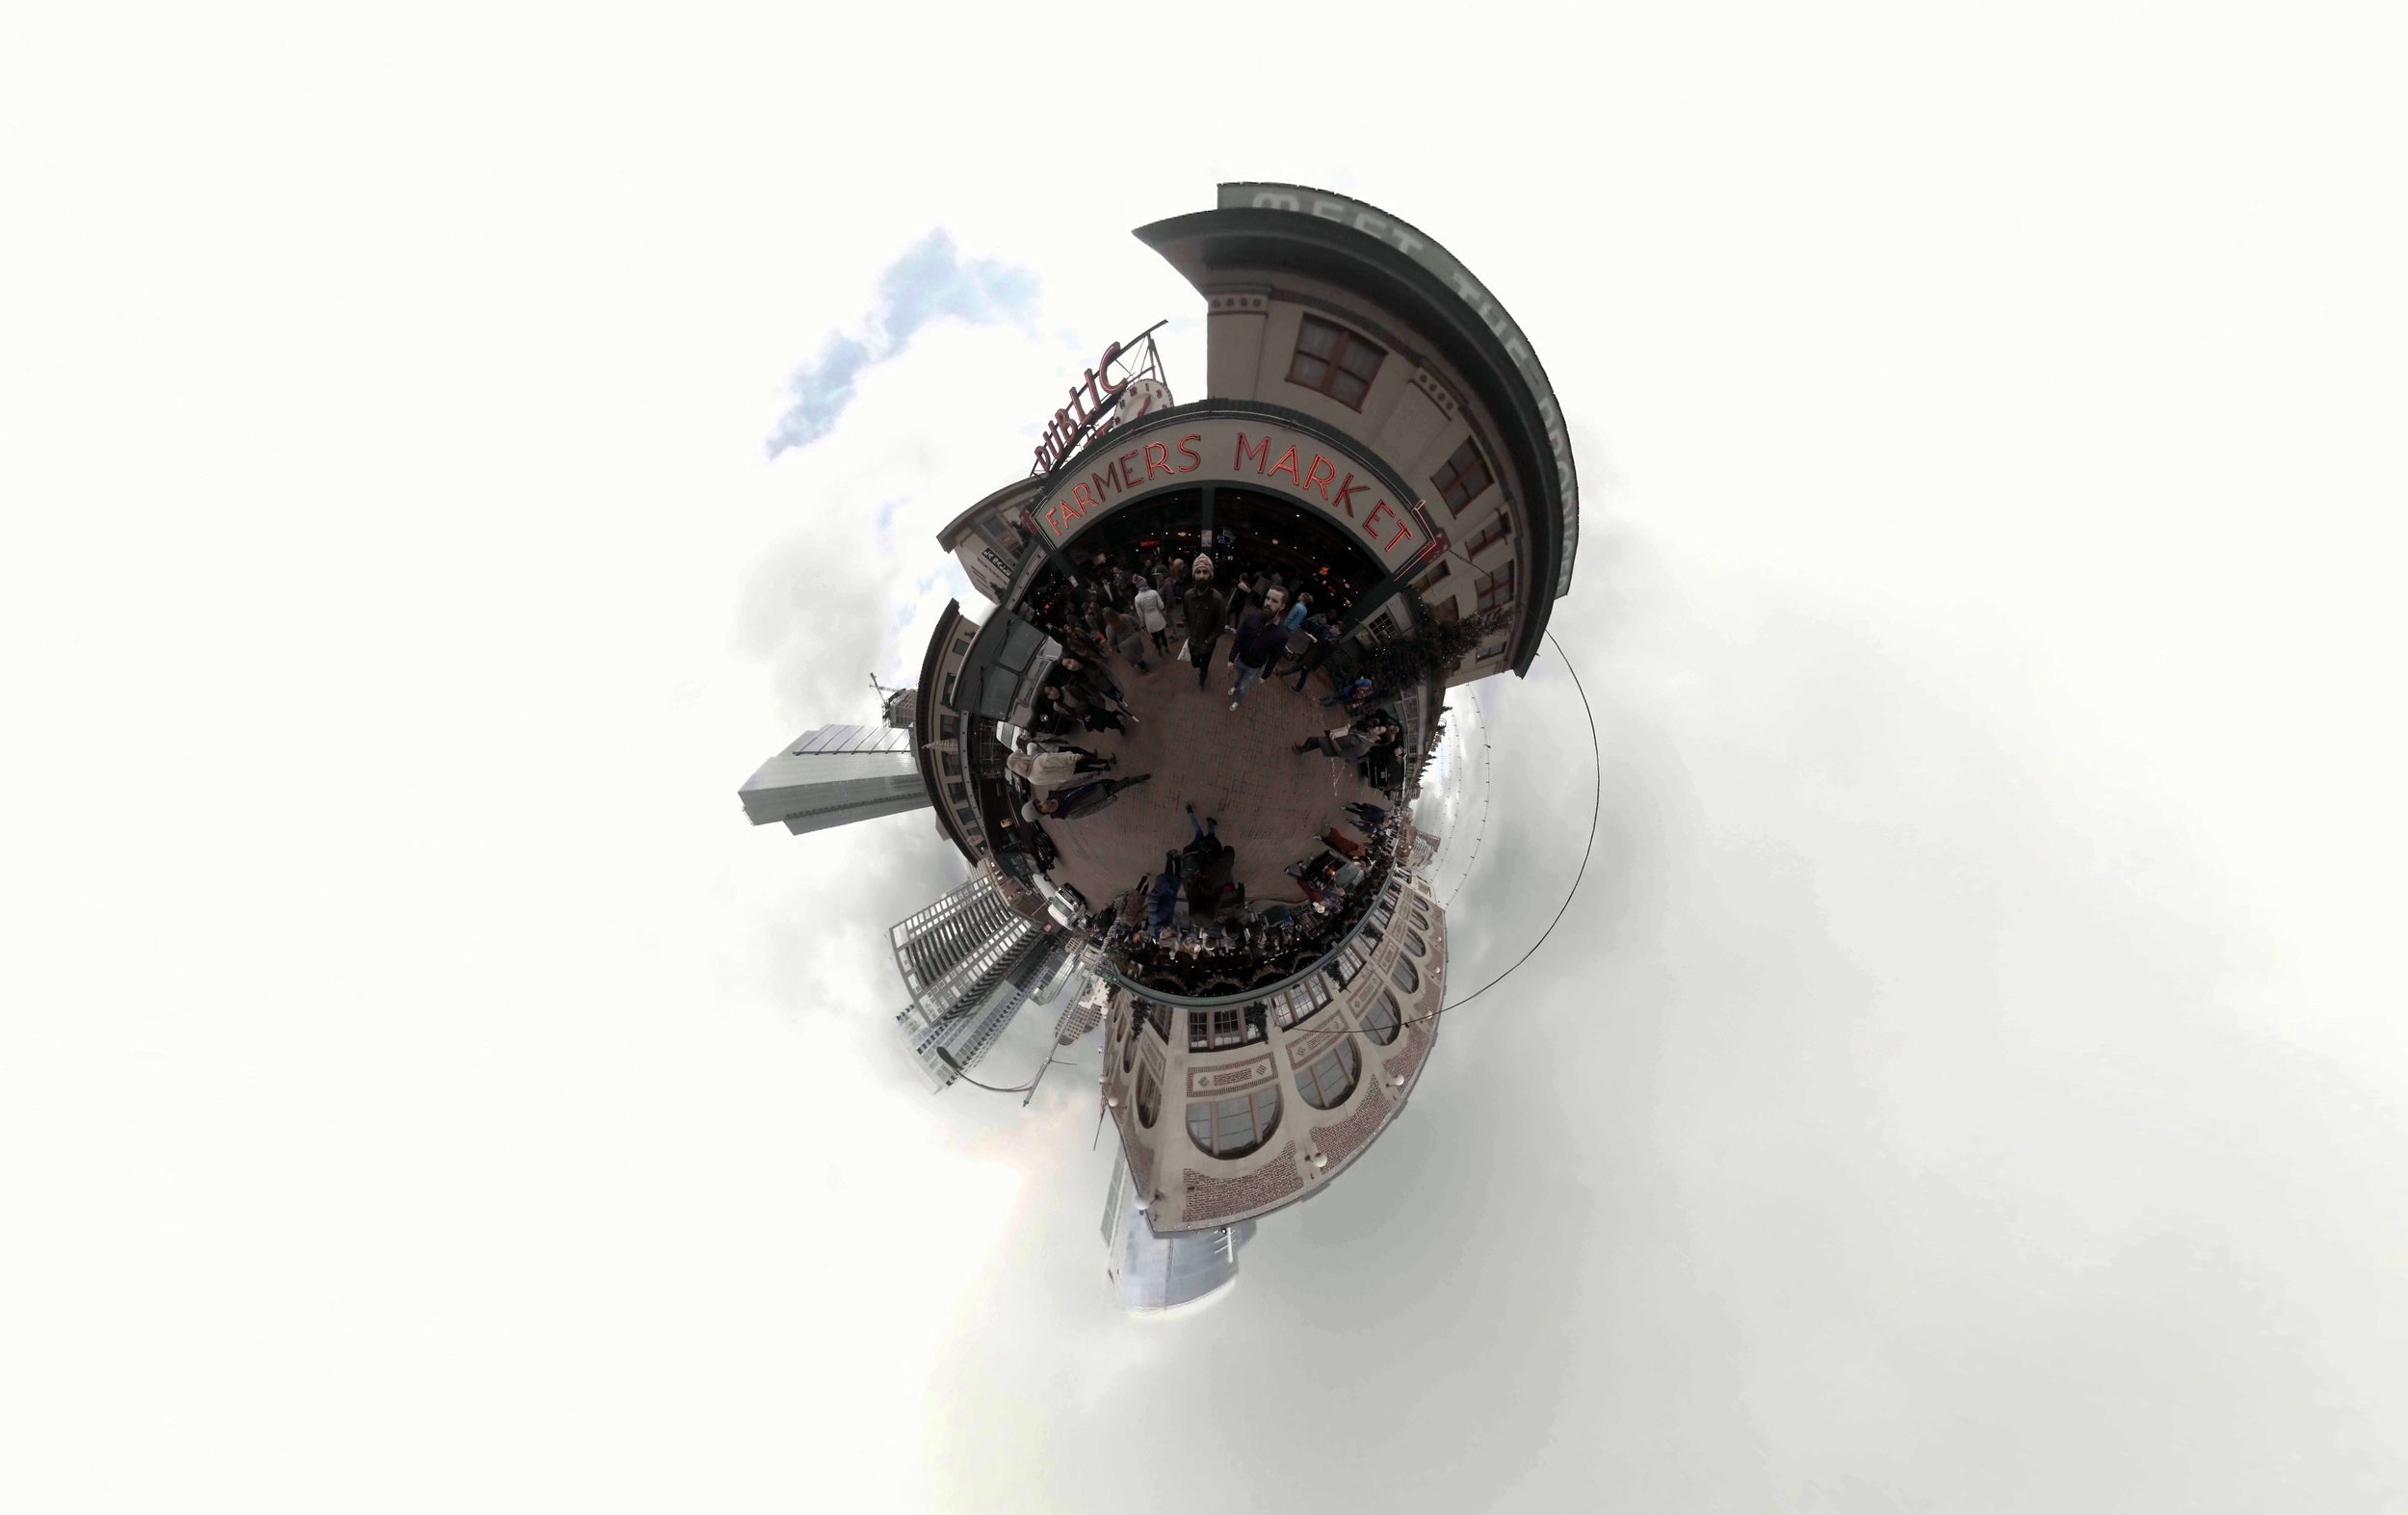 Tiny Planet + VR Video + Top360.jpg